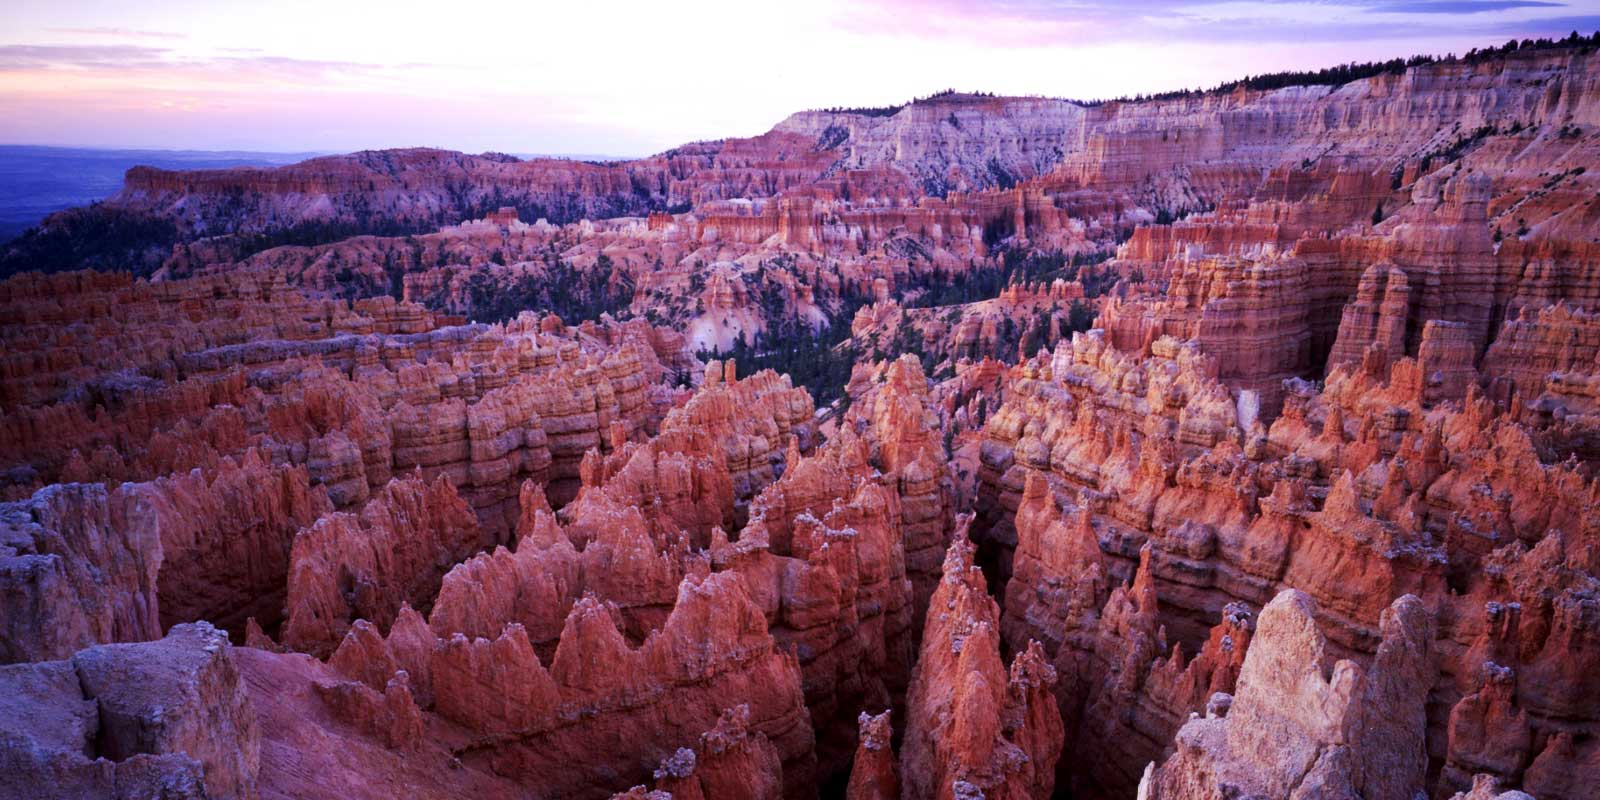 Overlooking the red rock hoodoos from Sunset Point at Bryce Canyon National Park